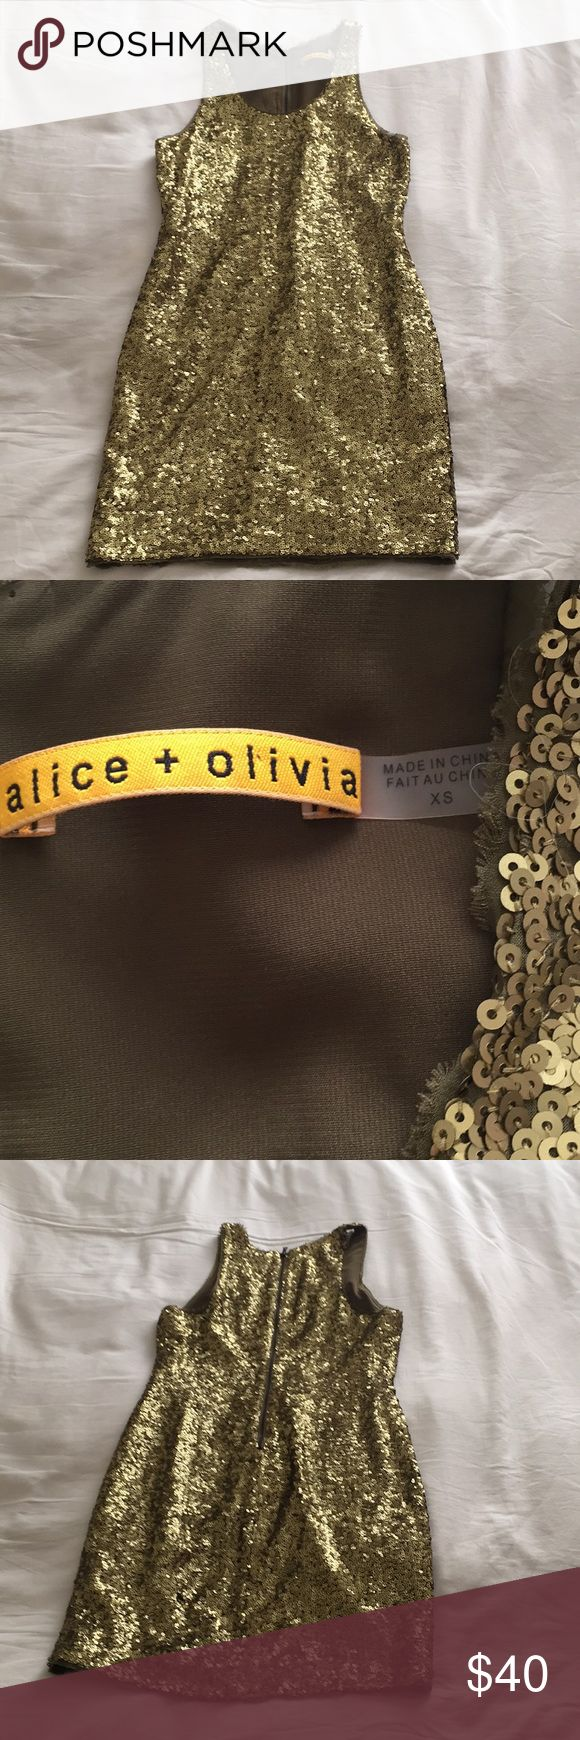 Flash Sale! NWOT Alice + Olivia Sequin Mini Priced to sell, this olive/gold sequined number is perfect for the holidays. Alice & Olivia Dresses Mini